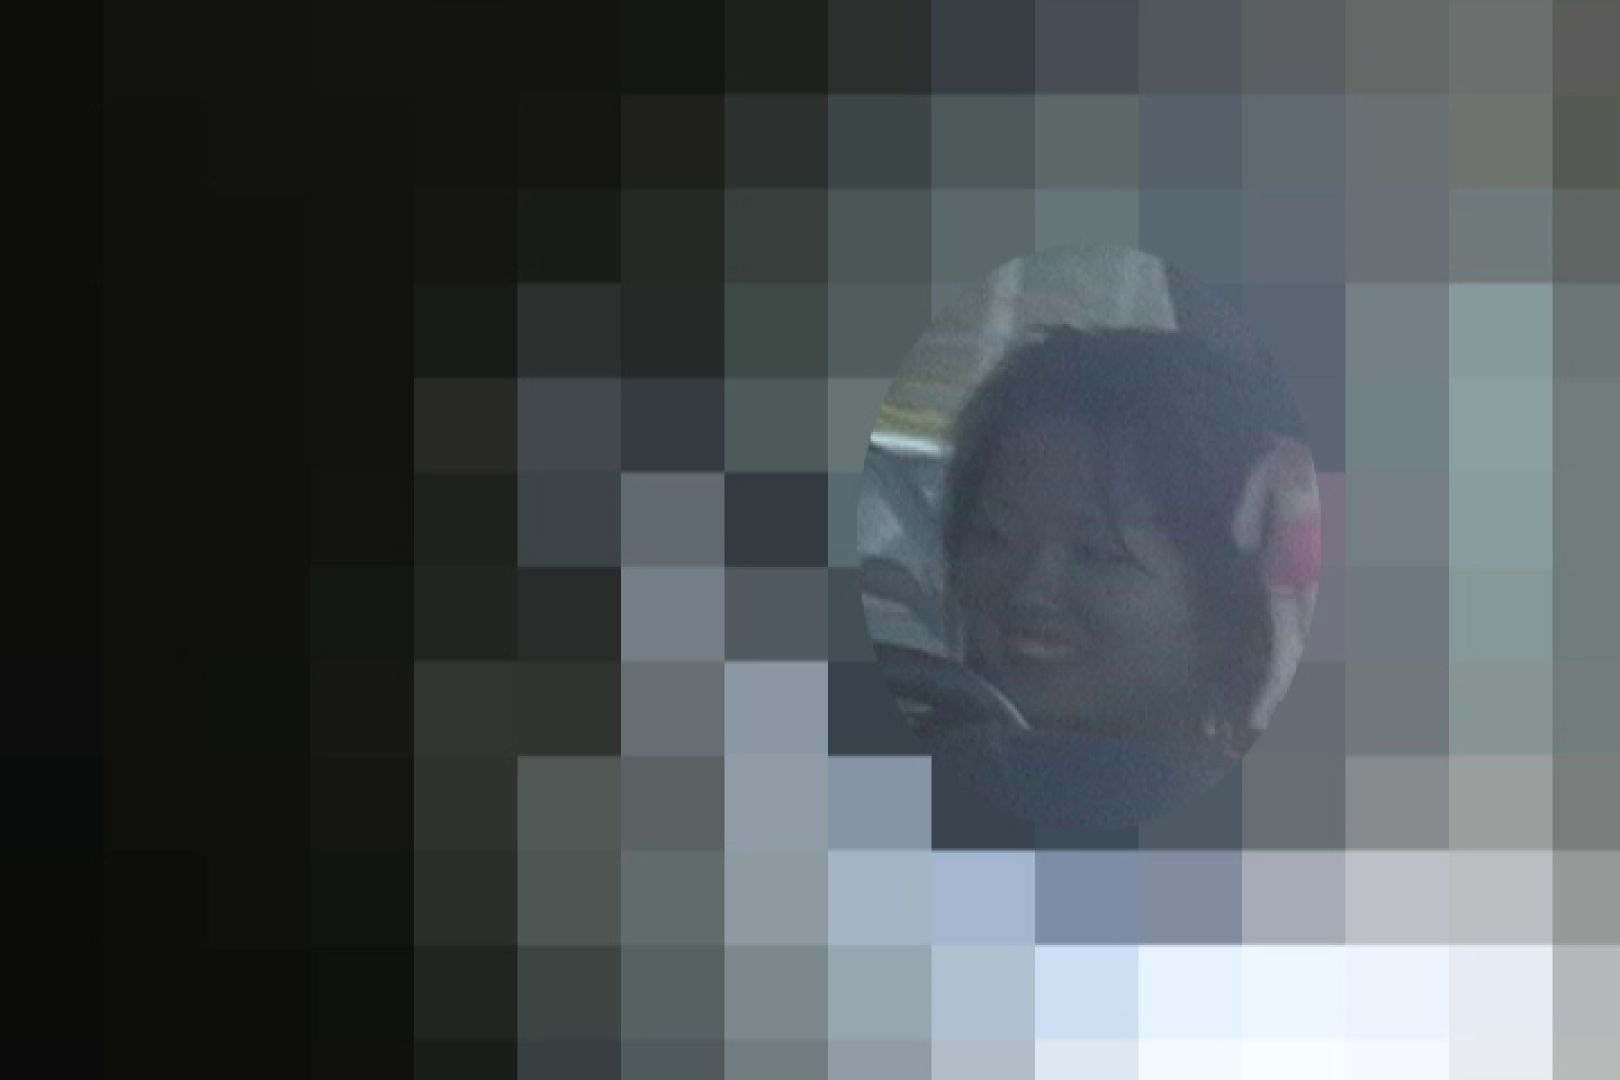 No.91 彼氏と二人で海水浴に来たところを盗撮されてます。 綺麗な乙女 | 盗撮映像大放出  107連発 105